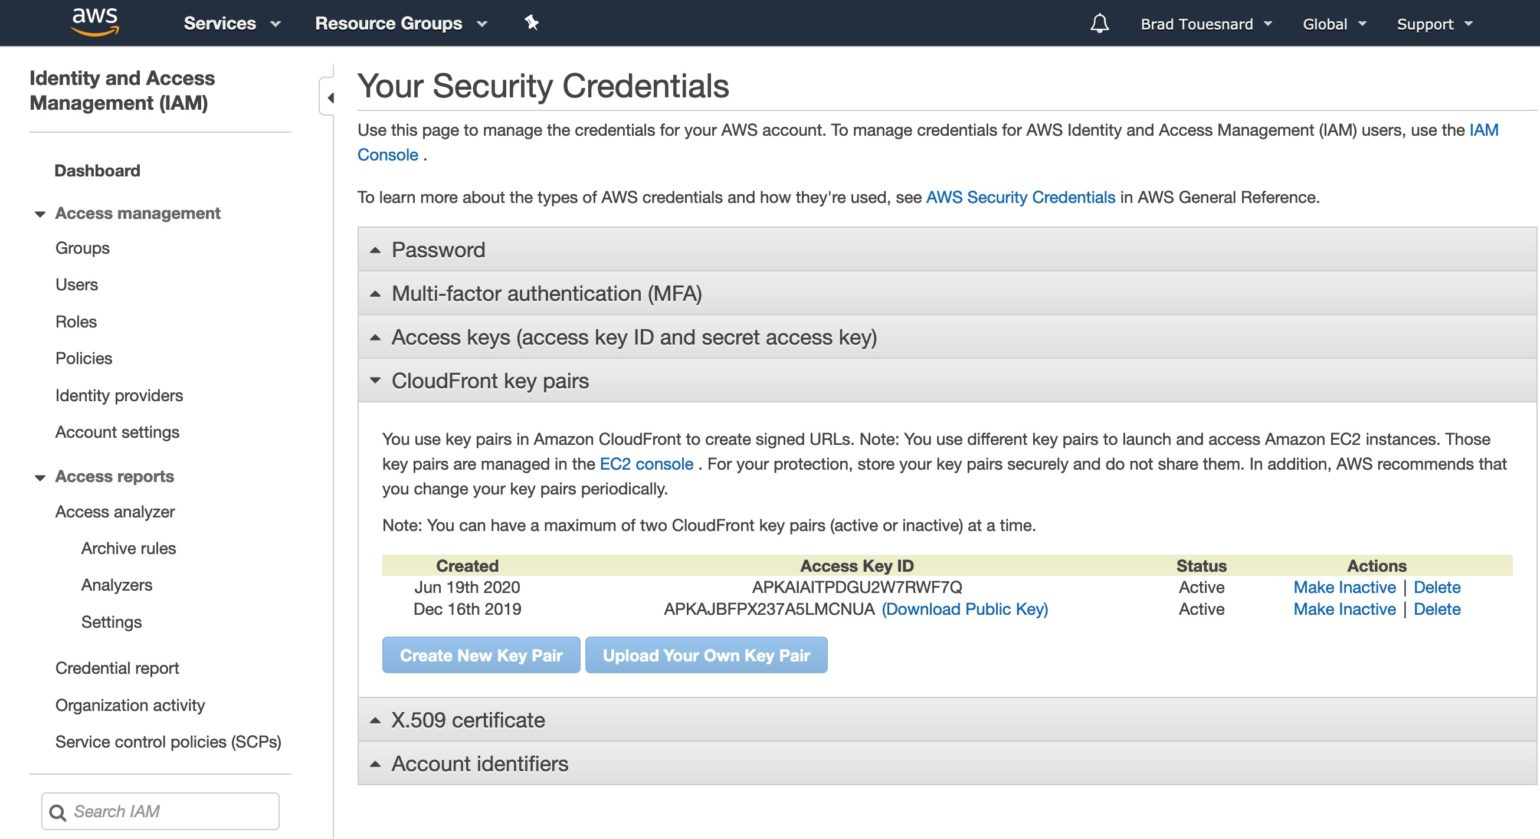 OME Signed CloudFront Setup - Your Security Credentials page showing new CloudFront key pair